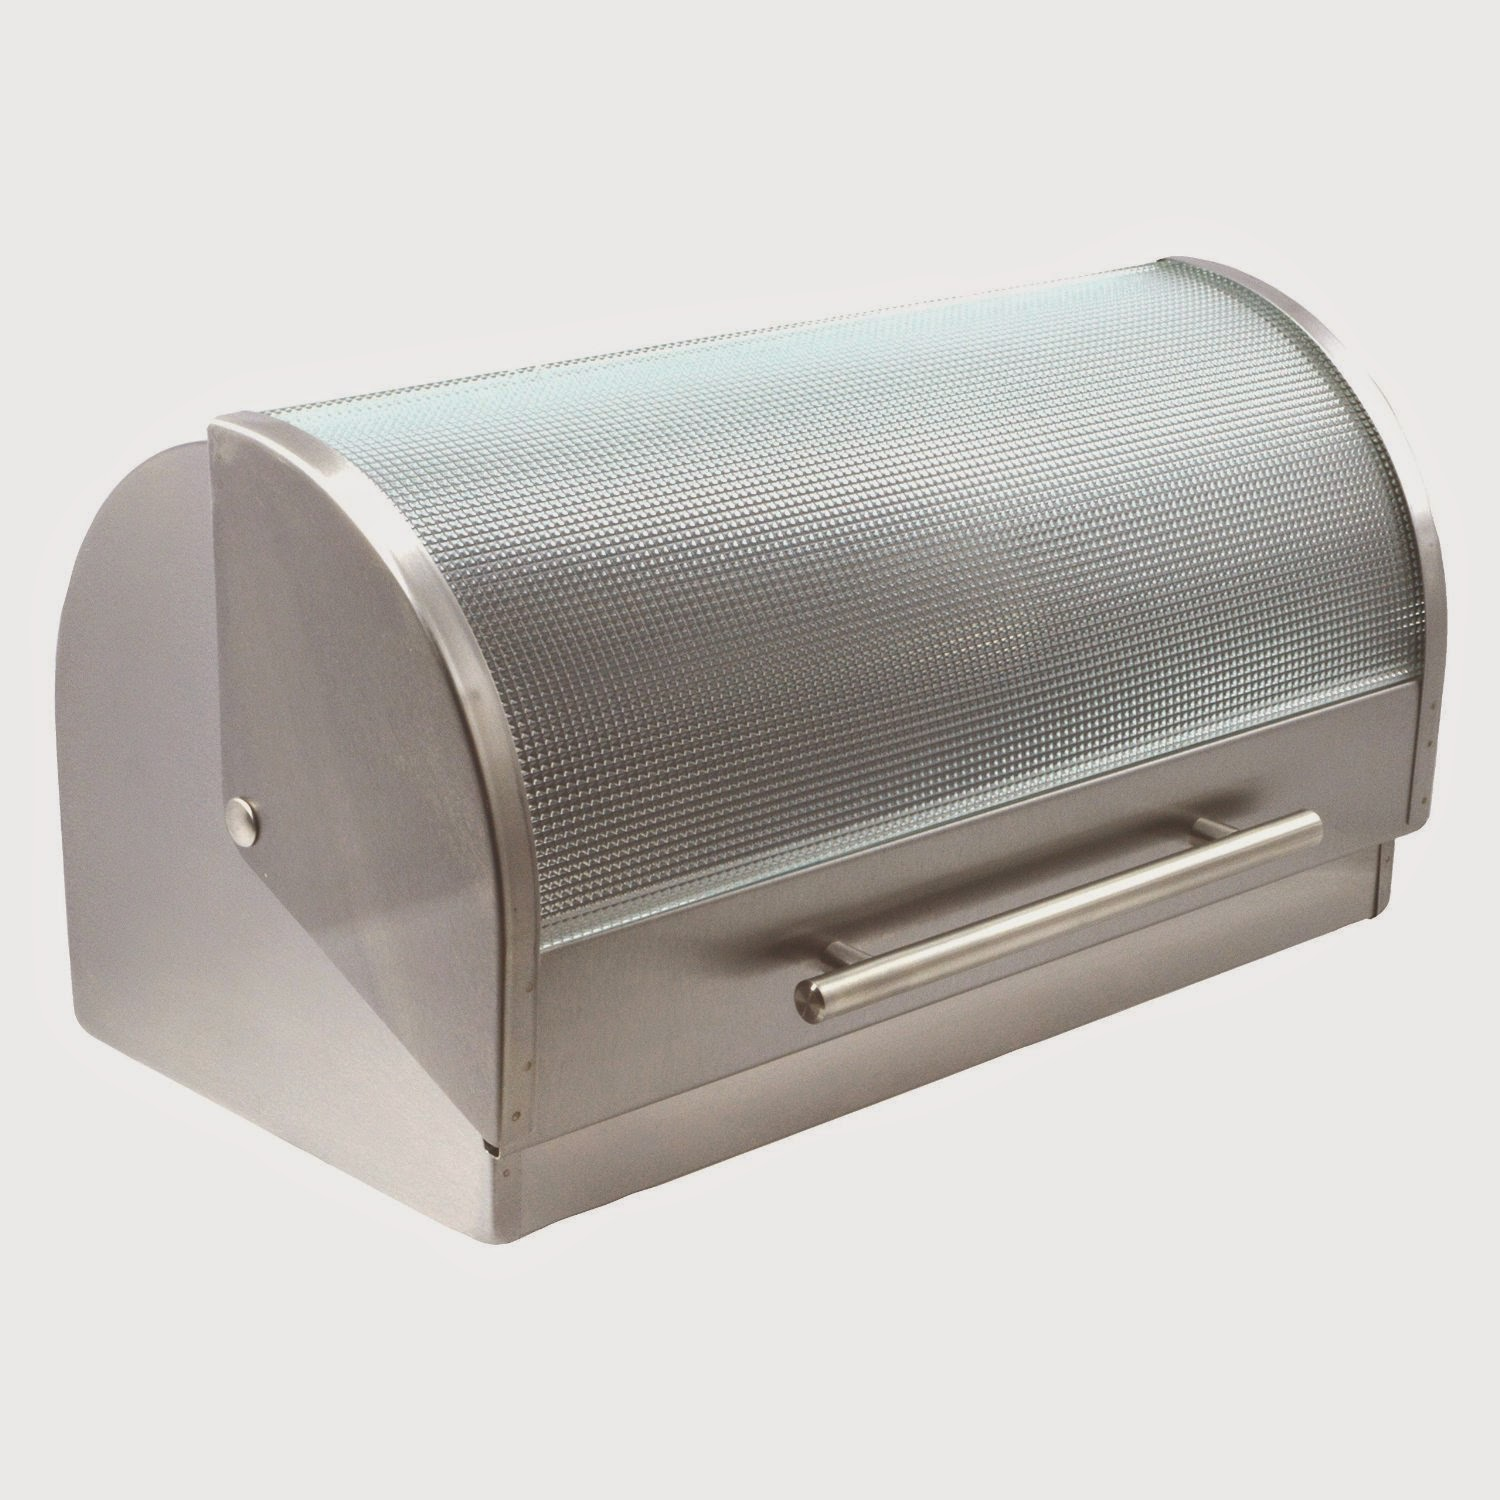 Francois et Mimi Stainless Steel Bread Box